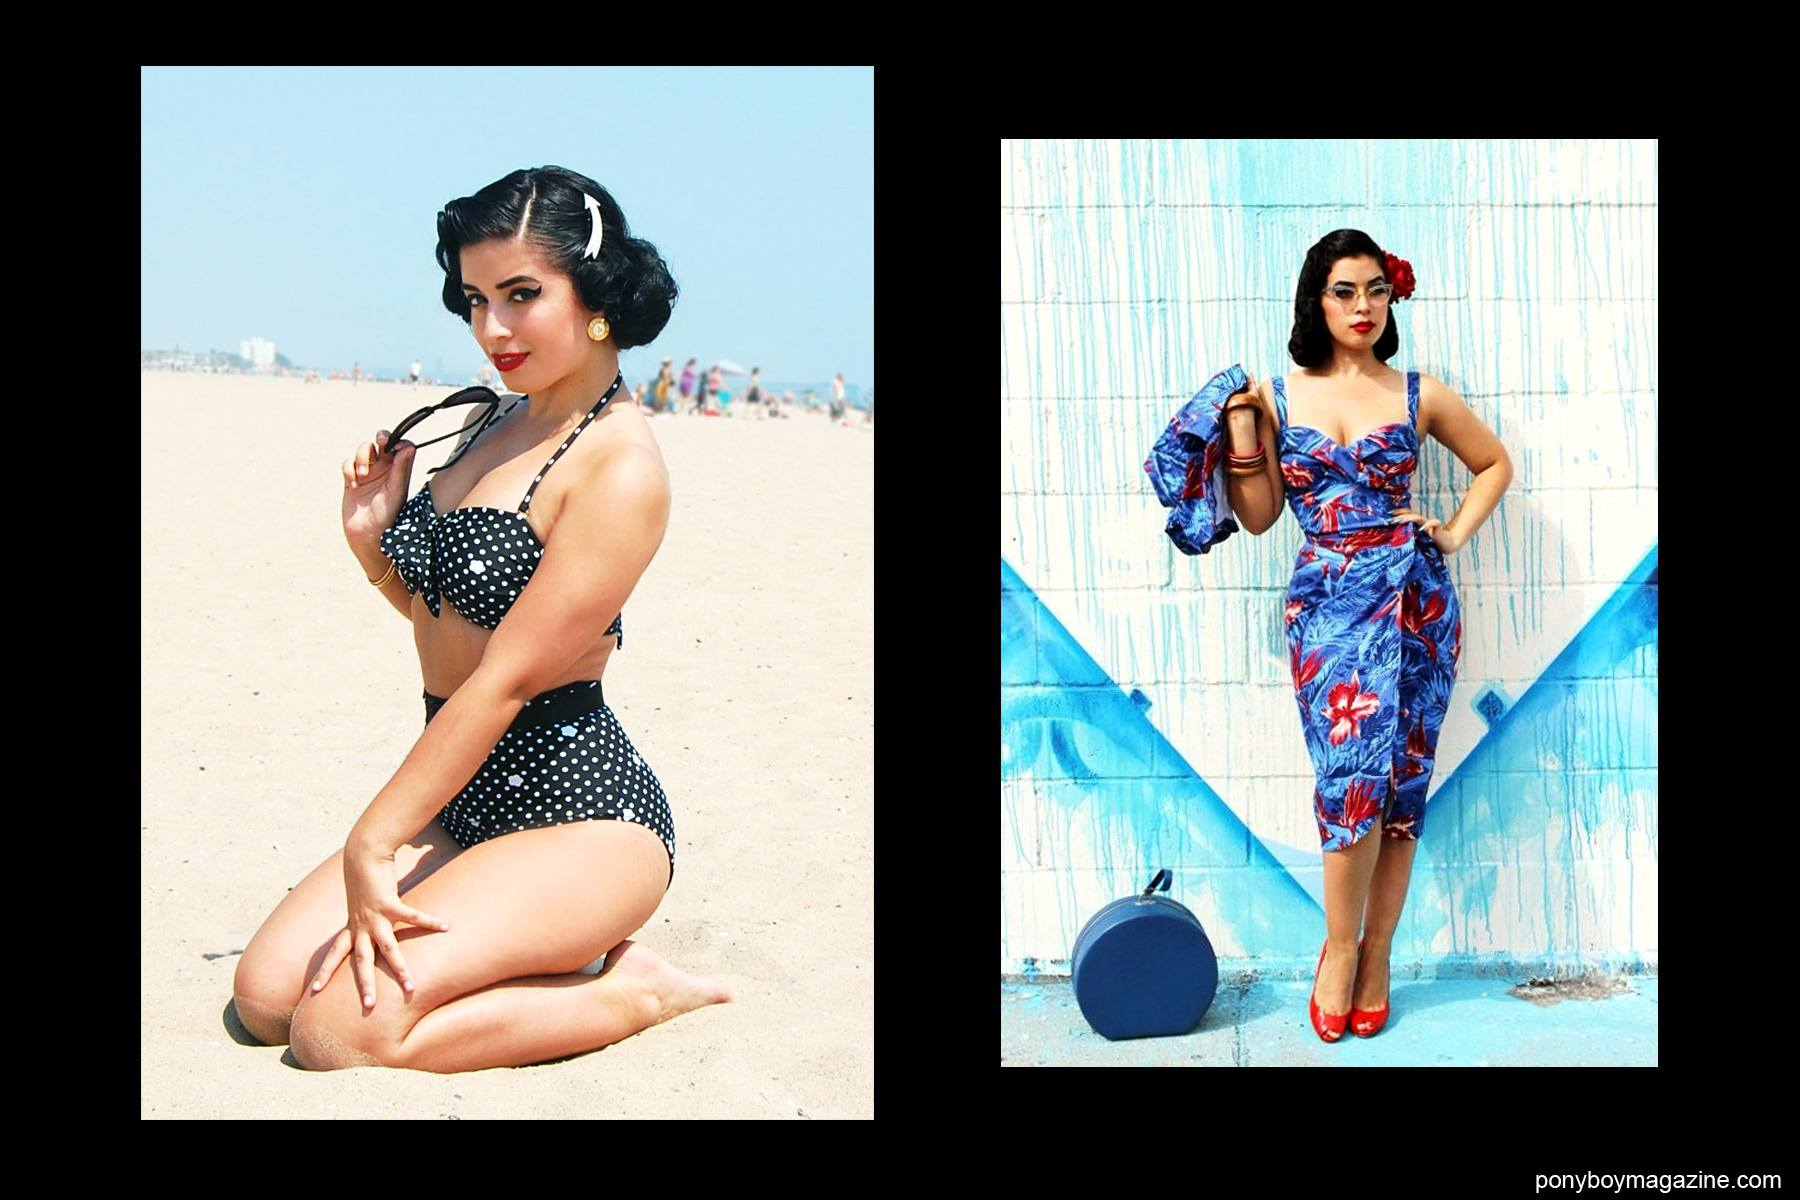 Beach photos of Jasmin Rodriguez, also known as Vintage Vandal. Ponyboy Magazine NY.